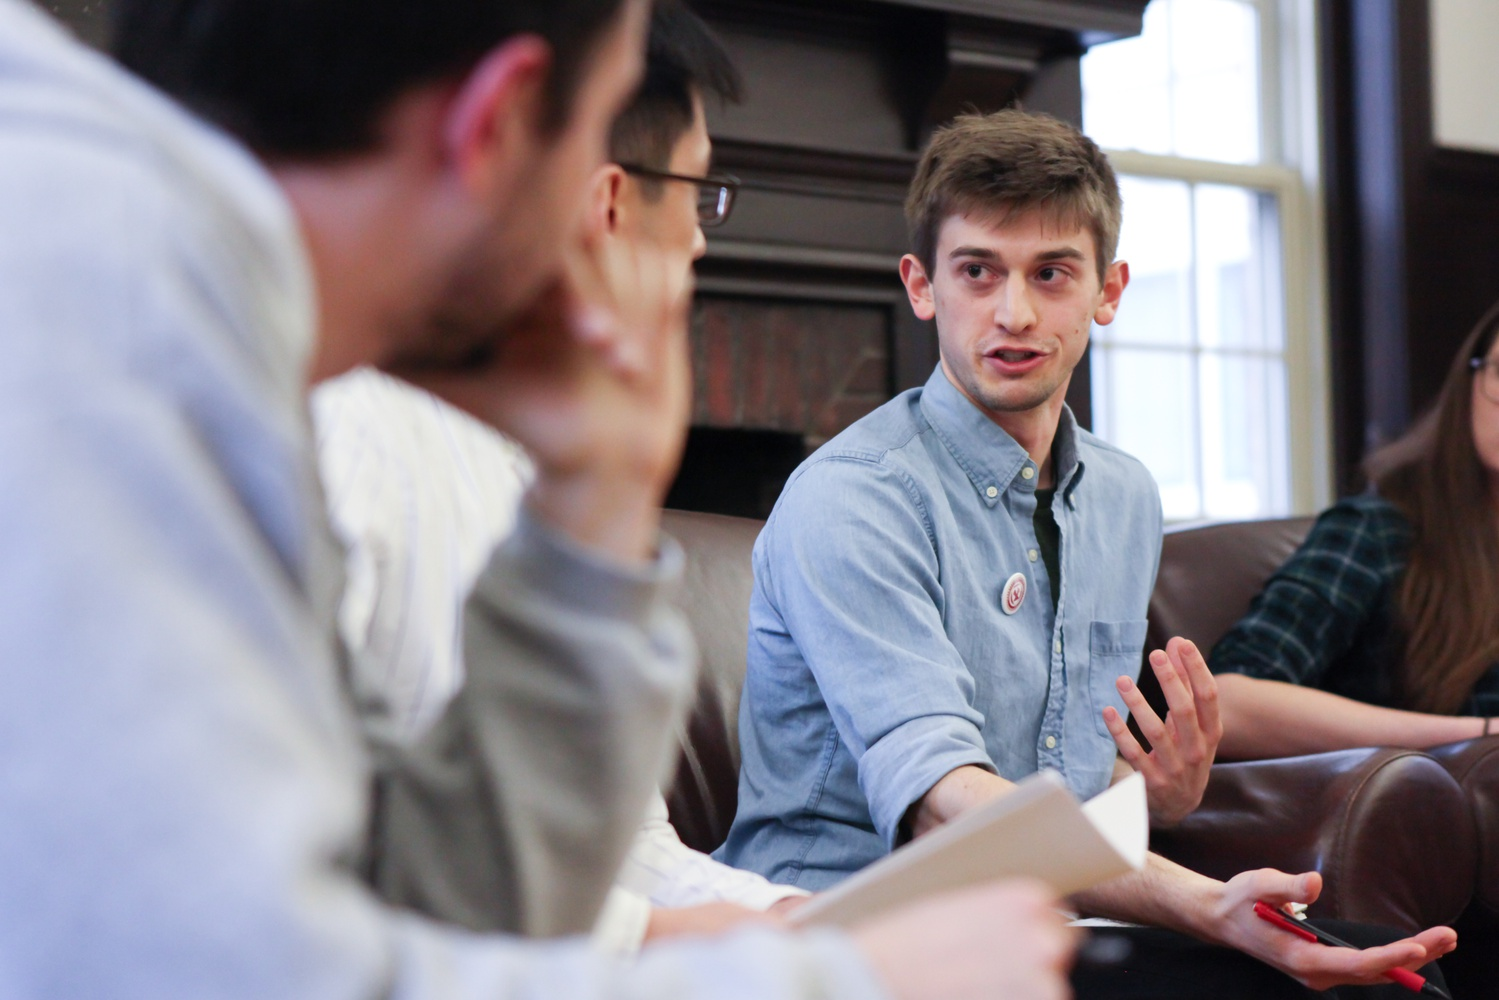 Ph.D. student and Harvard Graduate Students Union- United Automobile Workers organizer Justin Bloesch argues for graduate unionization during a panel hosted by The Crimson.